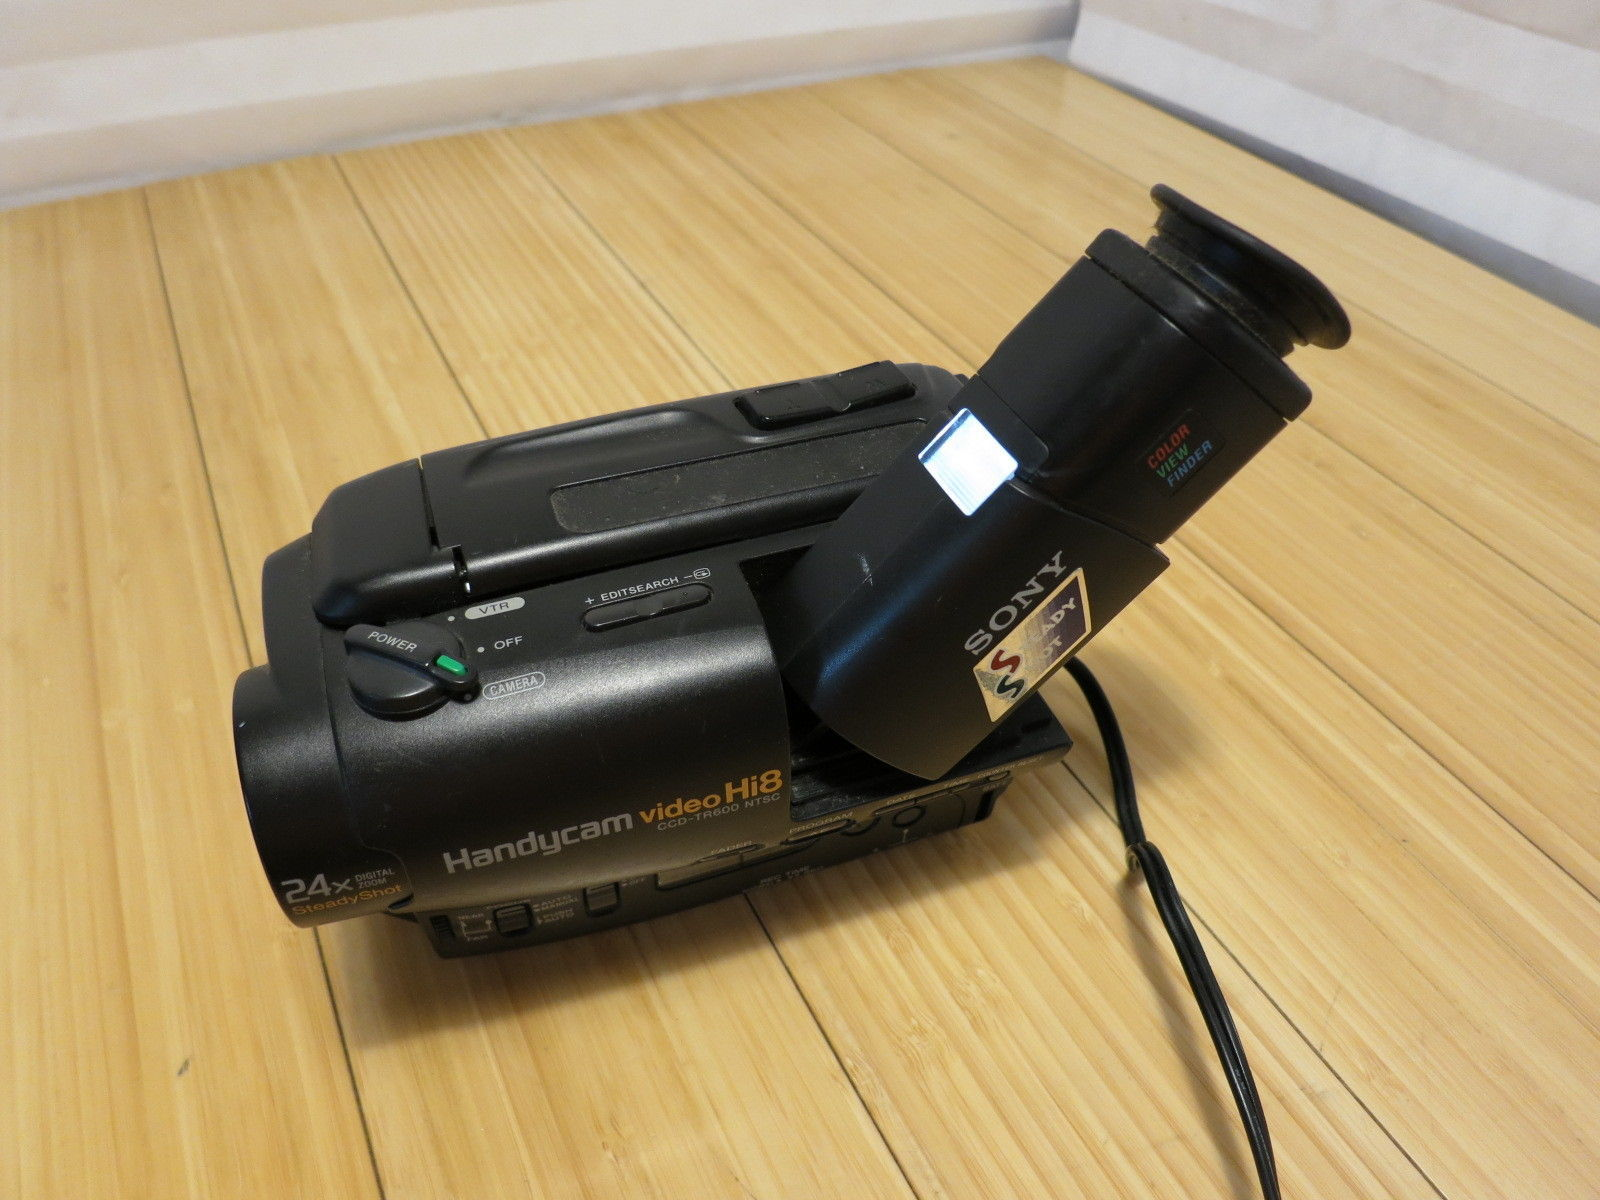 Sony Handycam CCD-TR600 8mm Video8 HI8 and 50 similar items